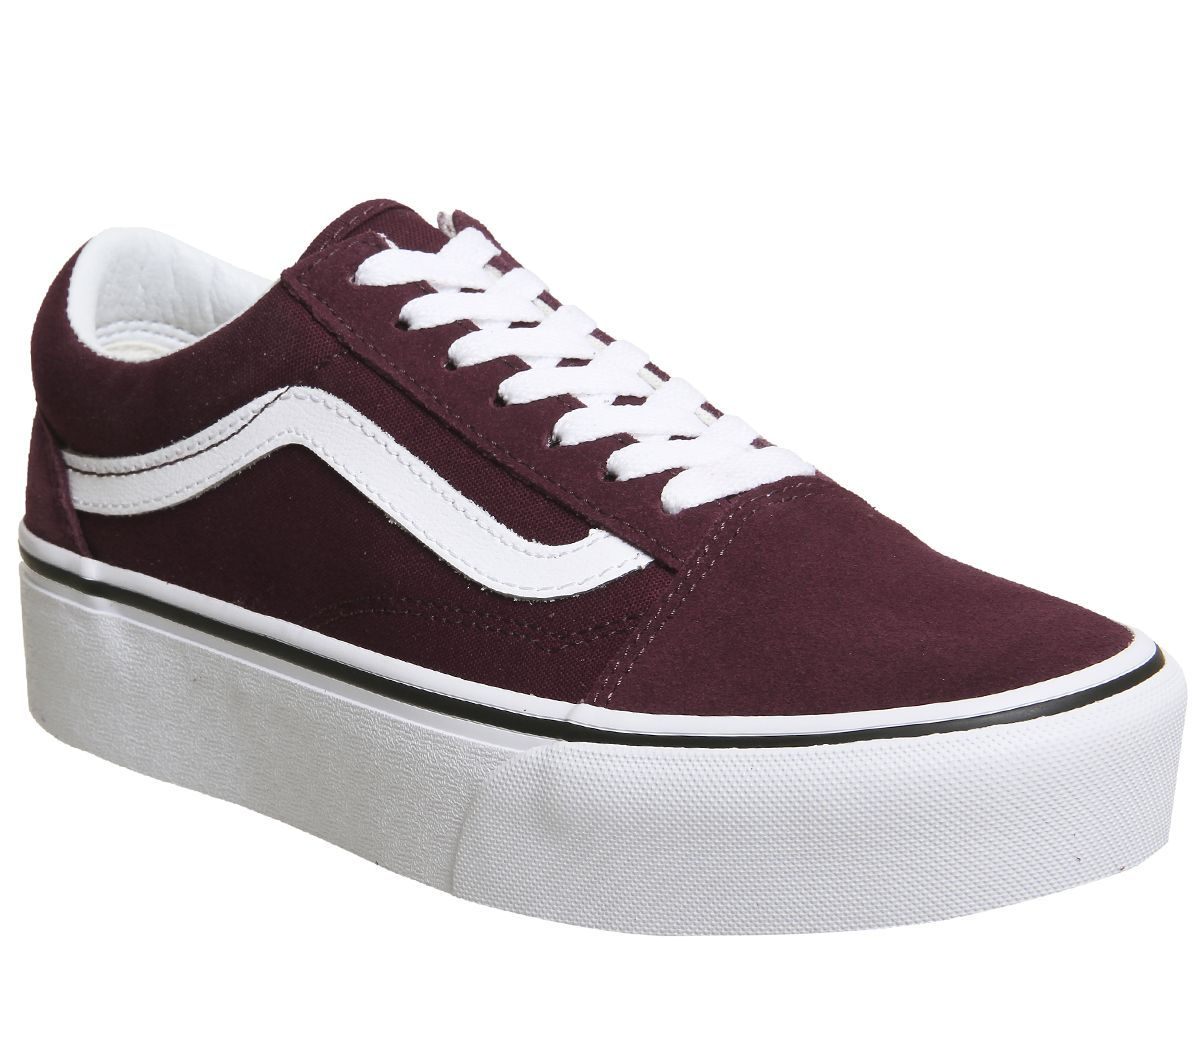 8c3c51eb4bc173 Vans Old Skool Platforms Port Royale White - Hers trainers